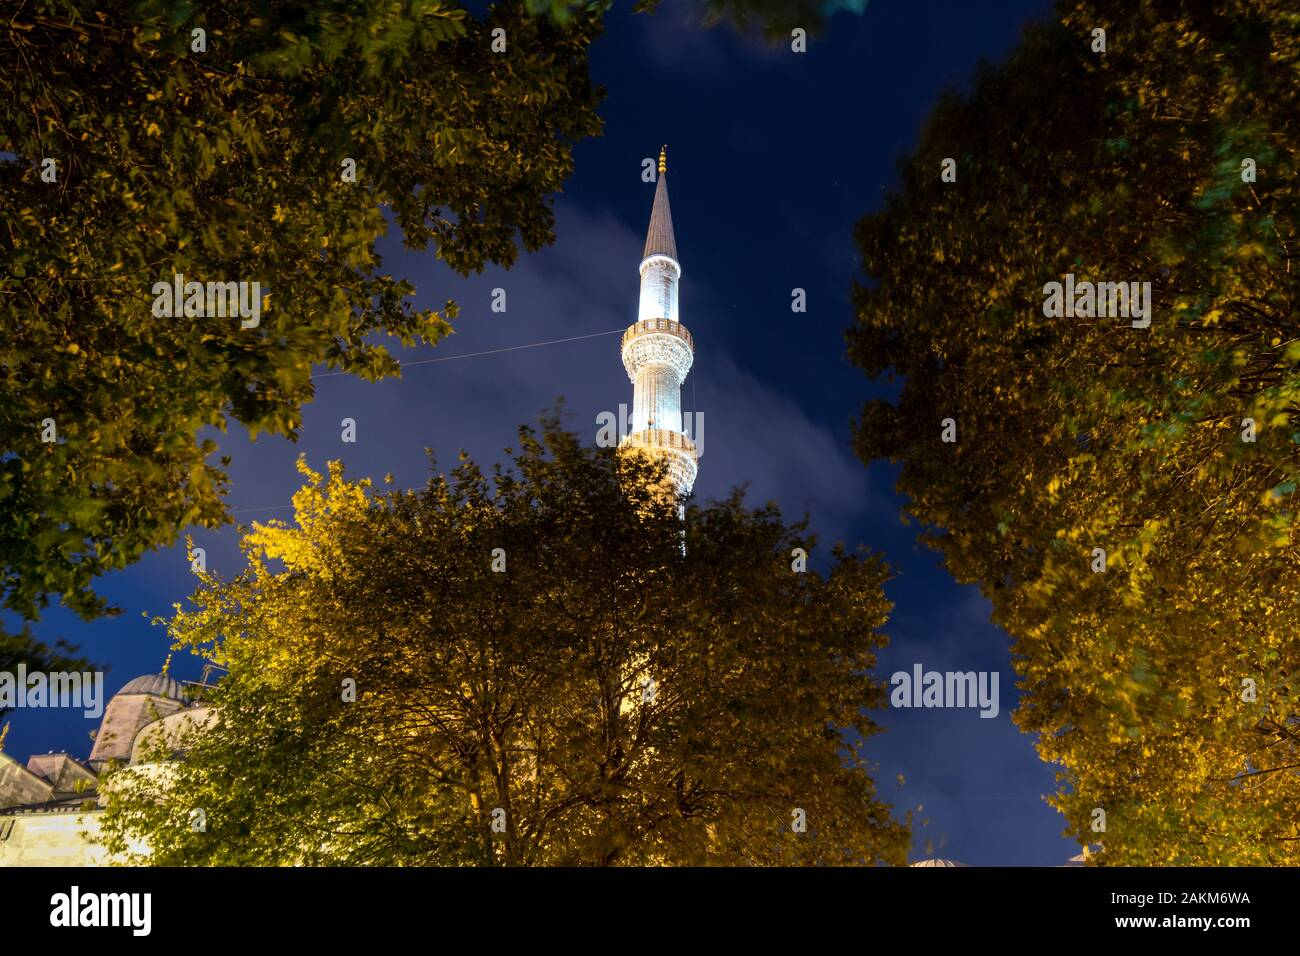 A single minaret rises into the night sky in the Sultanahmet district of Istanbul Turkey. Stock Photo